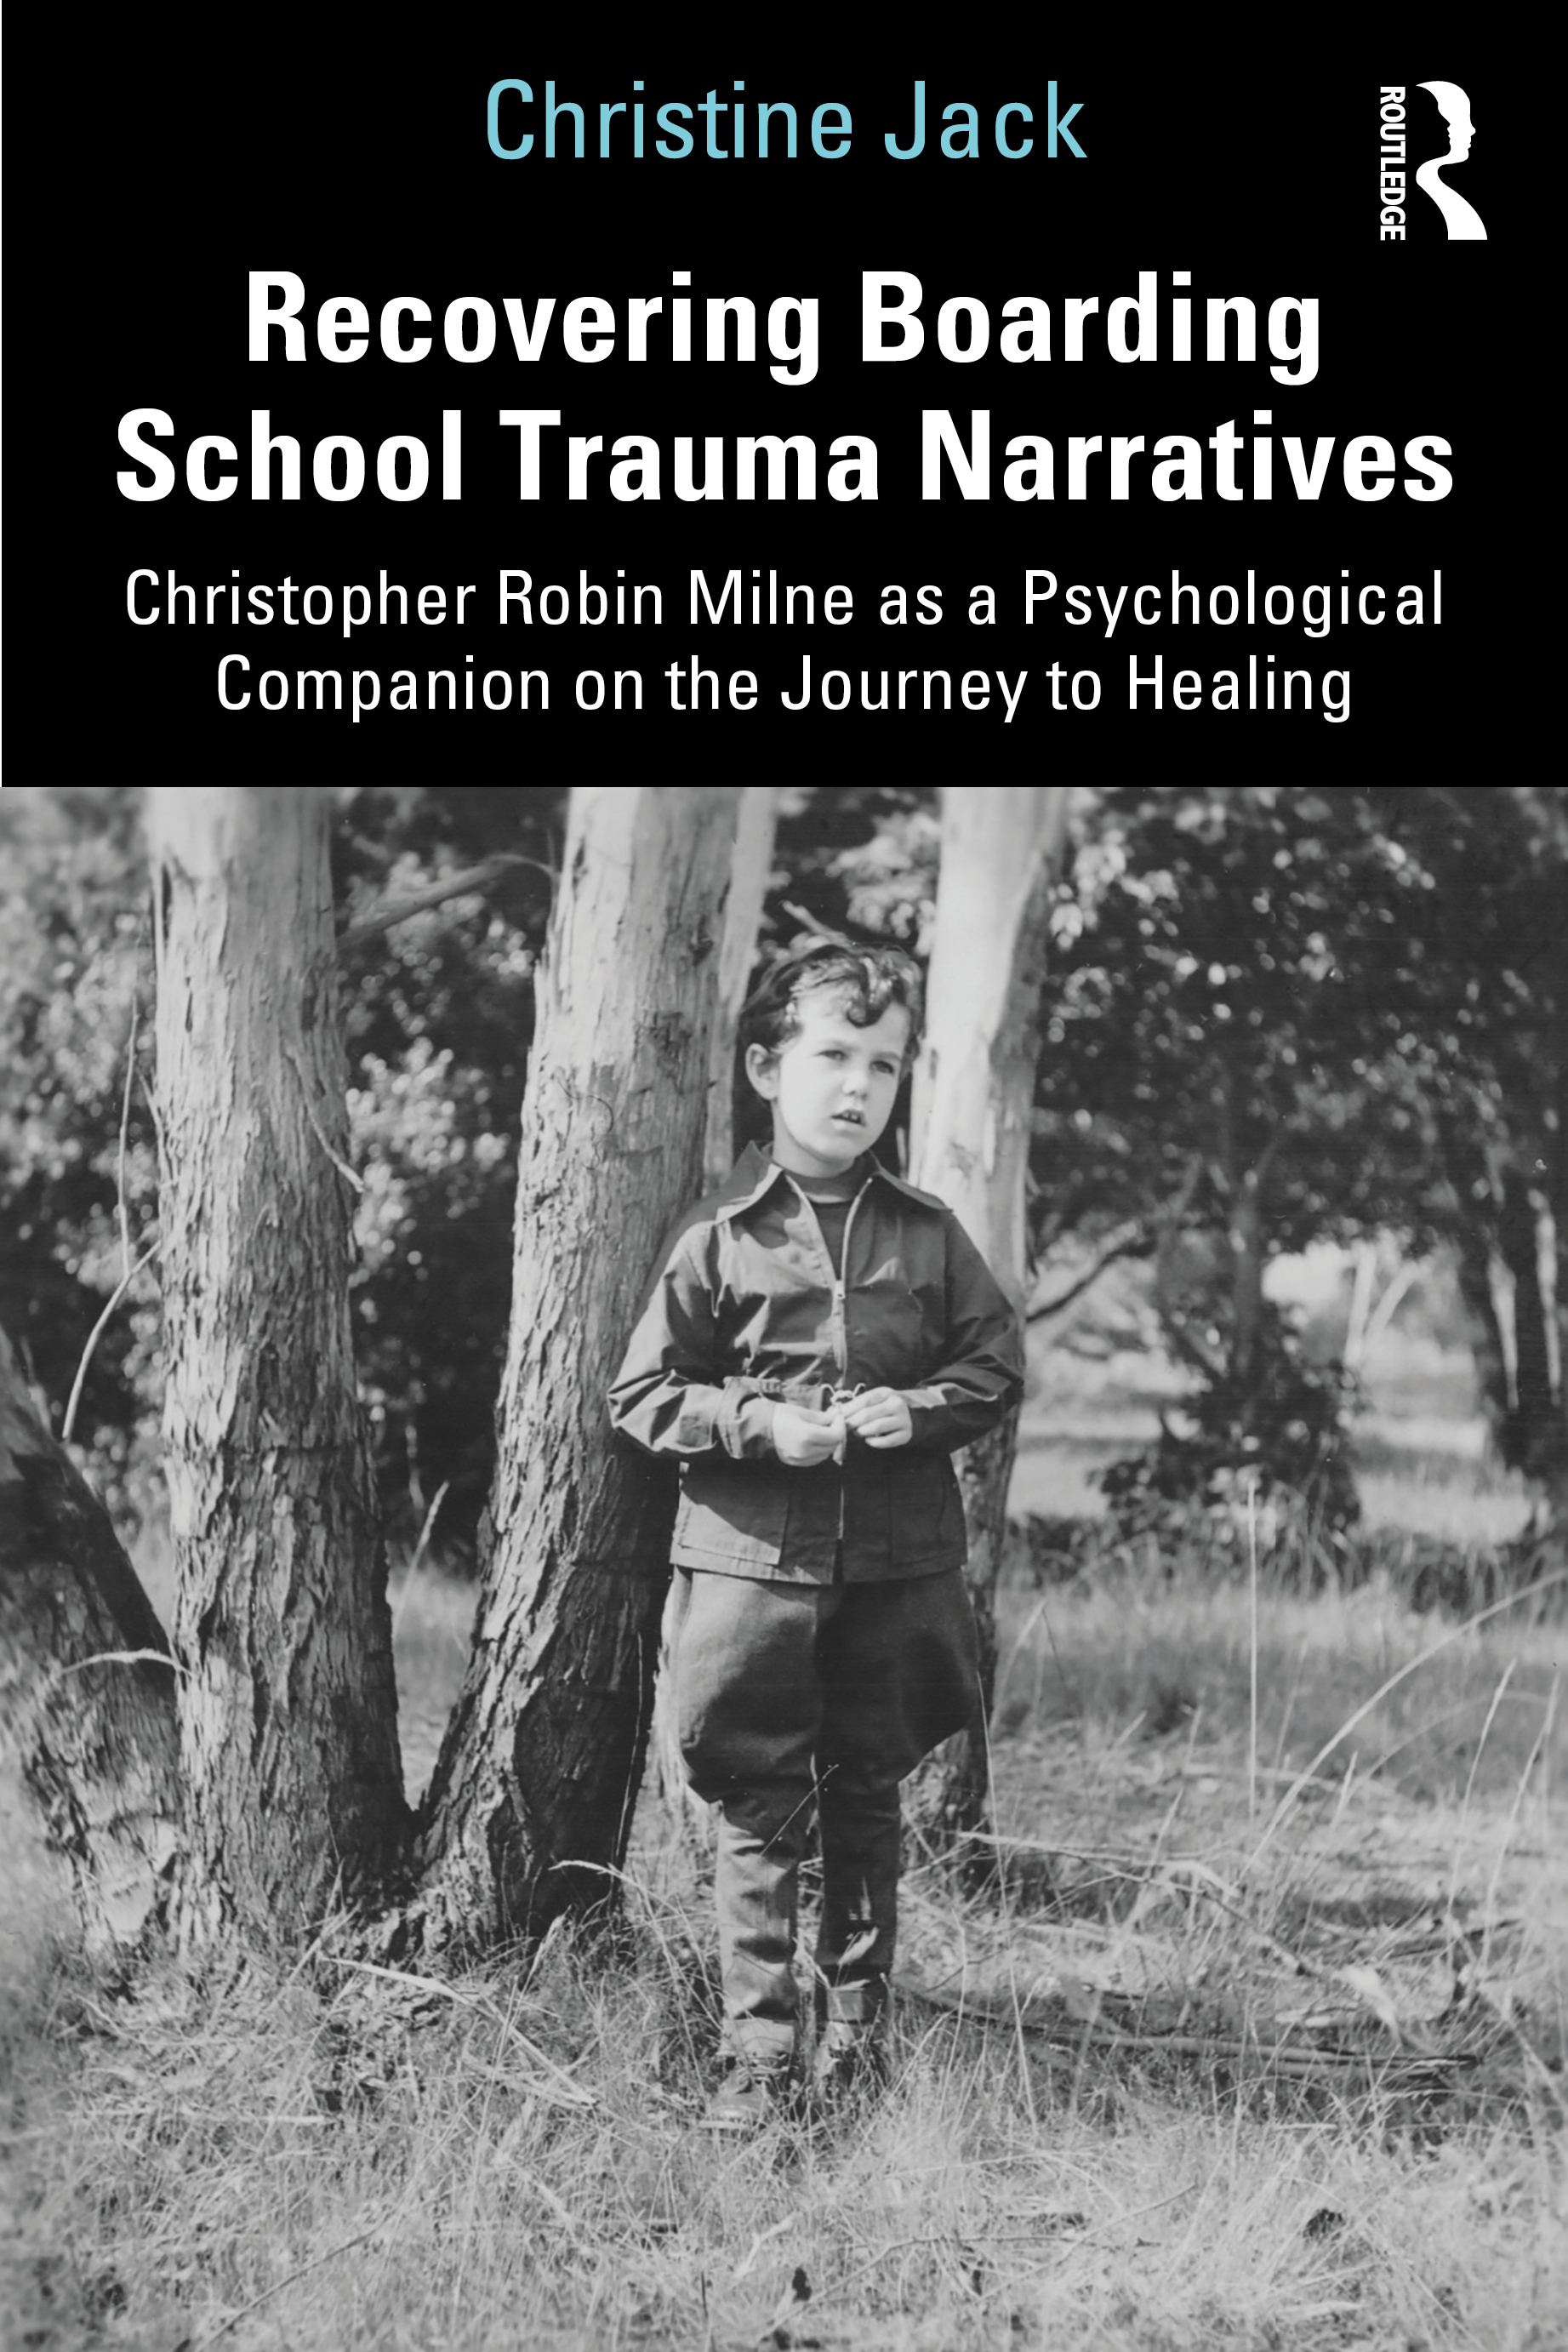 Recovering Boarding School Trauma Narratives: Christopher Robin Milne as a Psychological Companion on the Journey to Healing book cover